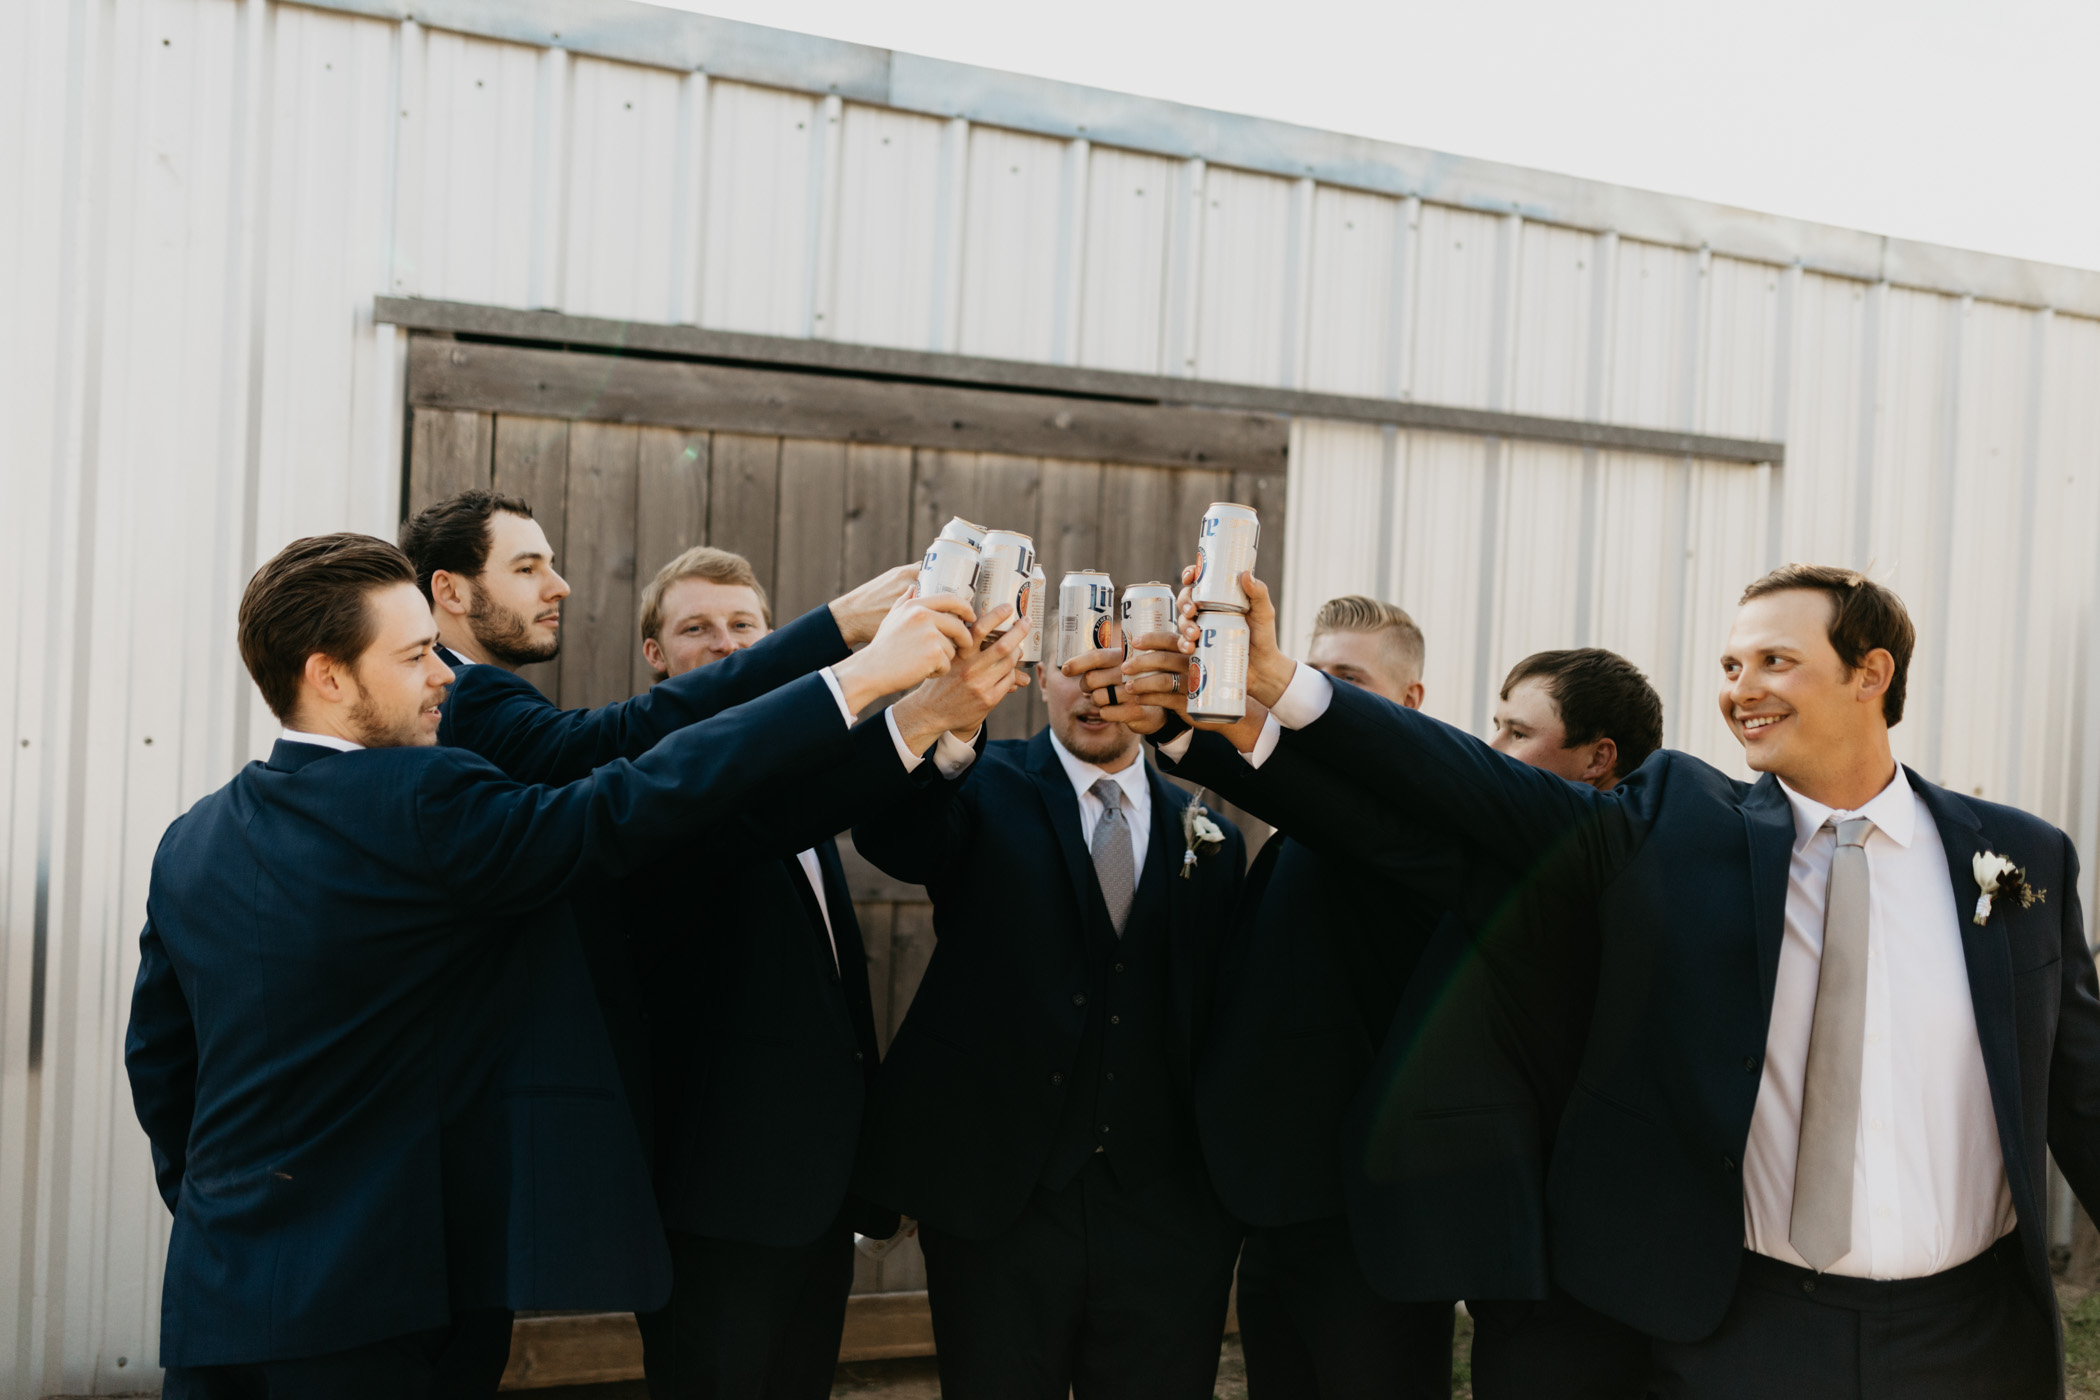 groomsmen drinking beer and toasting before ceremony